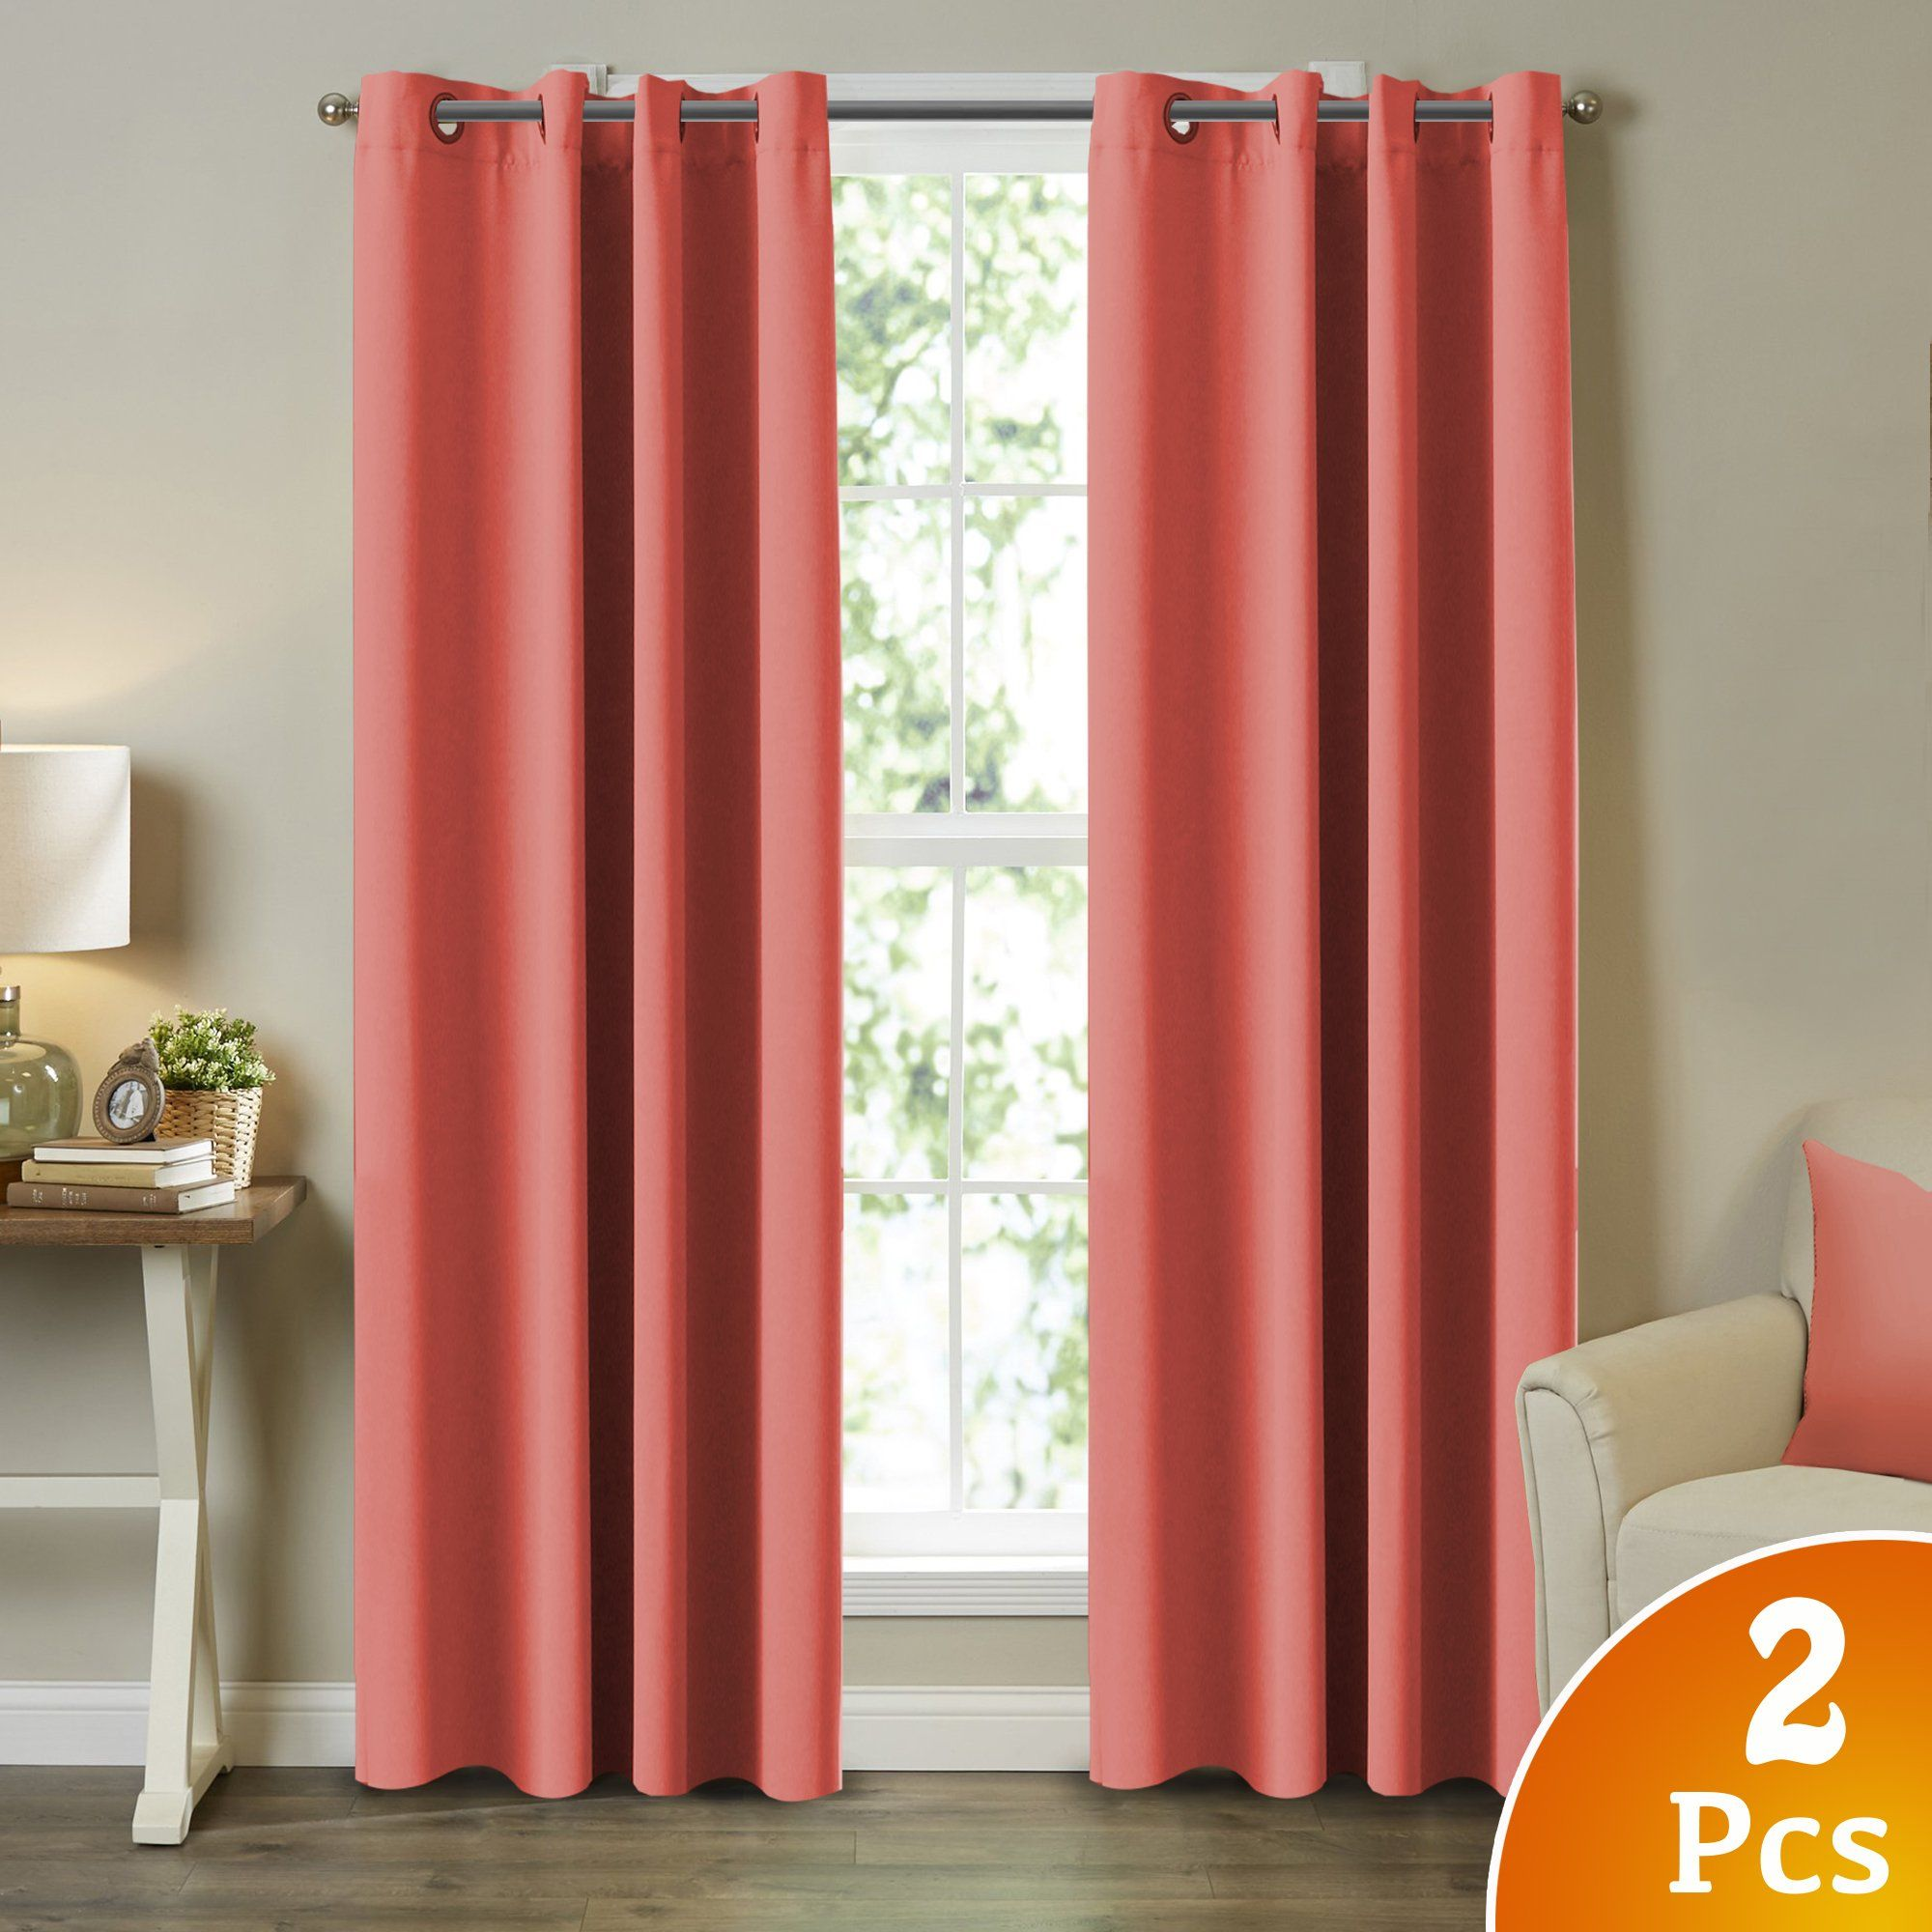 Long window over bed  turquoize coral window treatment blackout curtains thermal insulated